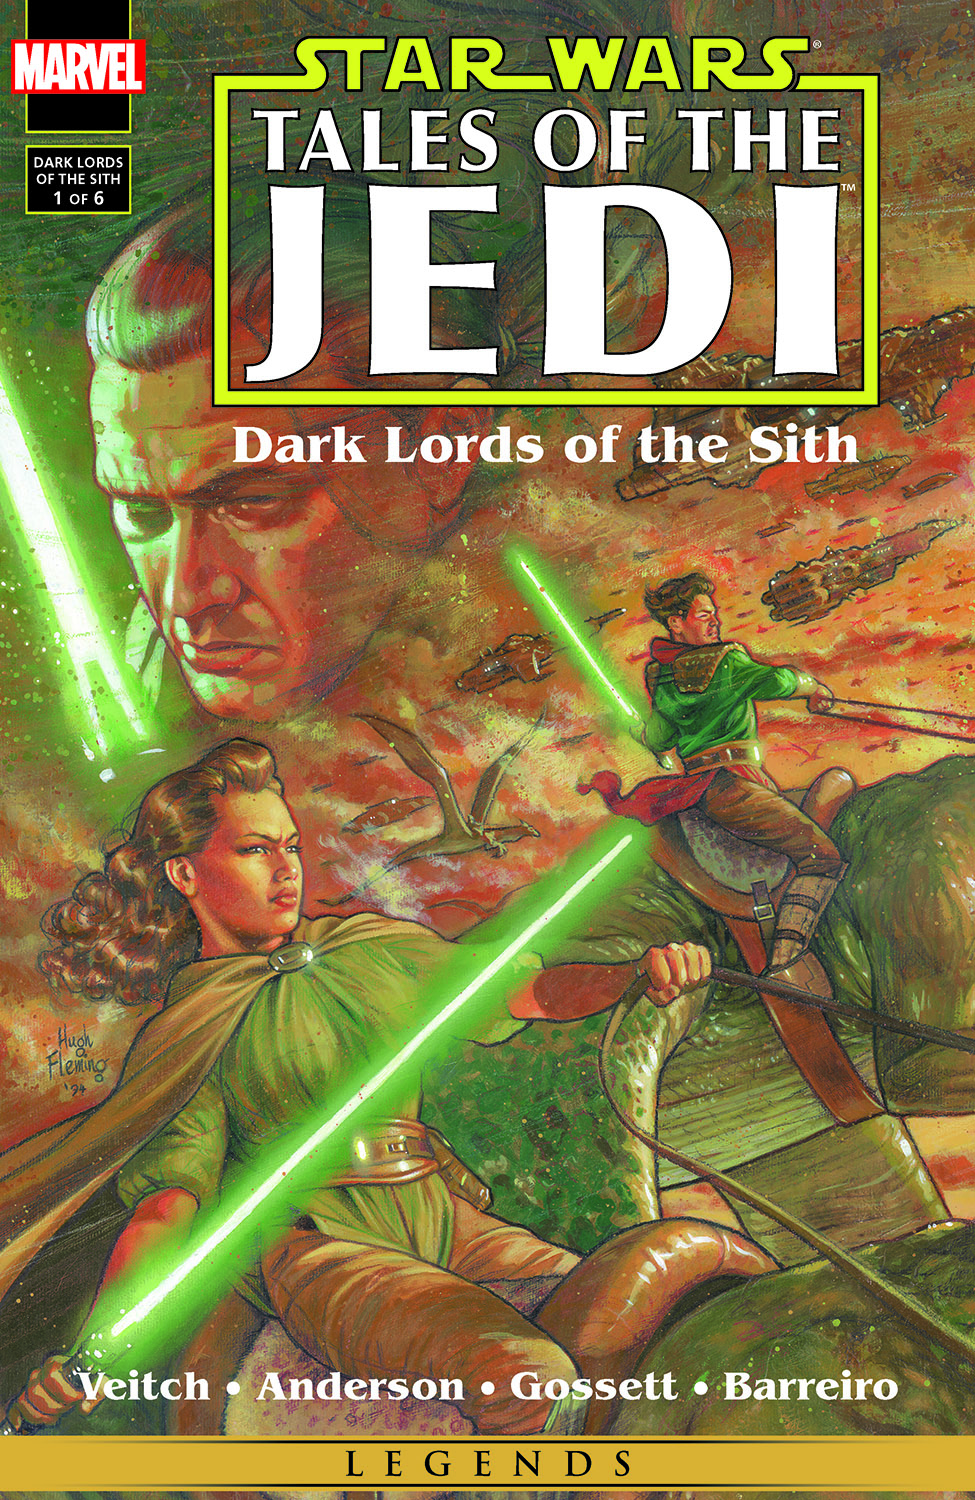 Star Wars: Tales of the Jedi - Dark Lords of the Sith (1994) #1